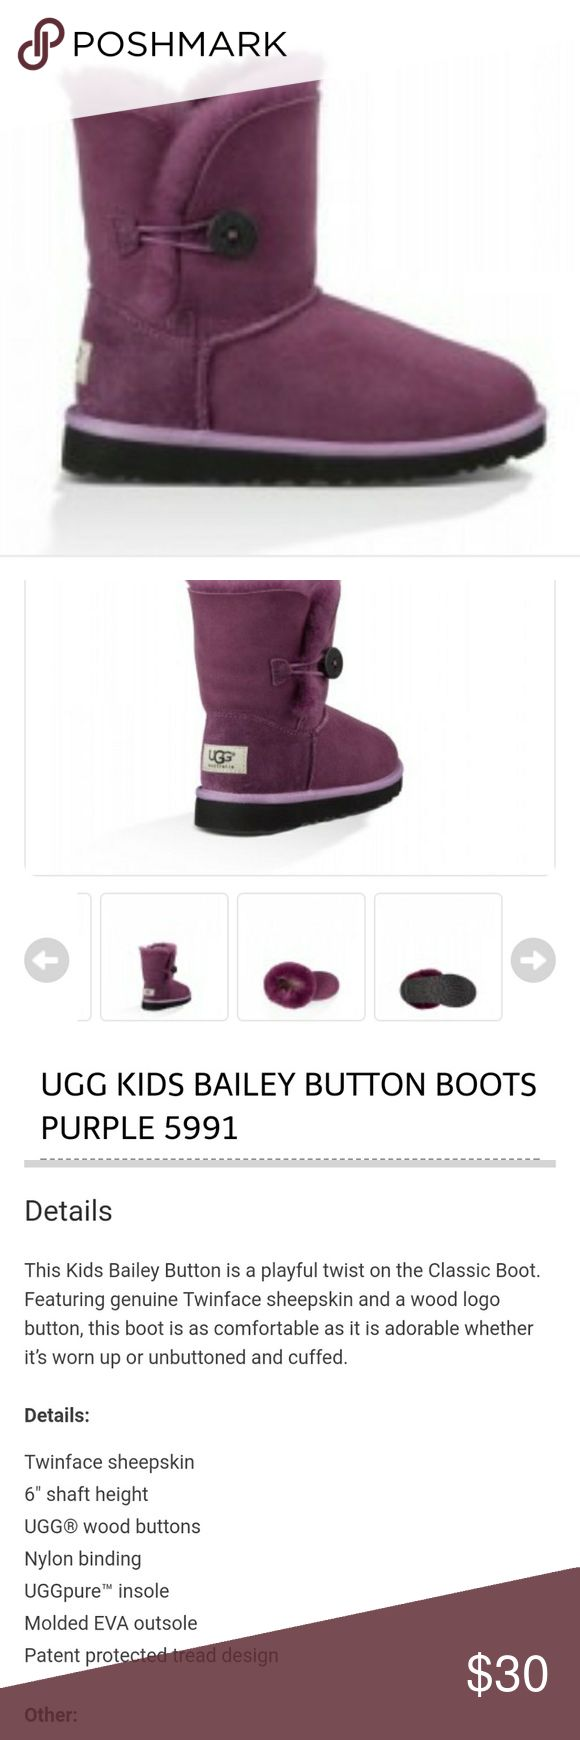 kids purple UGG Bailey button boots! good condition UGG Bailey Button boots in purple! Originally $140 and on sale on UGG website for $62. Soles are great with logo still imprinted! still a lot of life left in them and scuffing/rubbed part on front can be dyed! a lot of life left in these boots! size 1 UGG Shoes